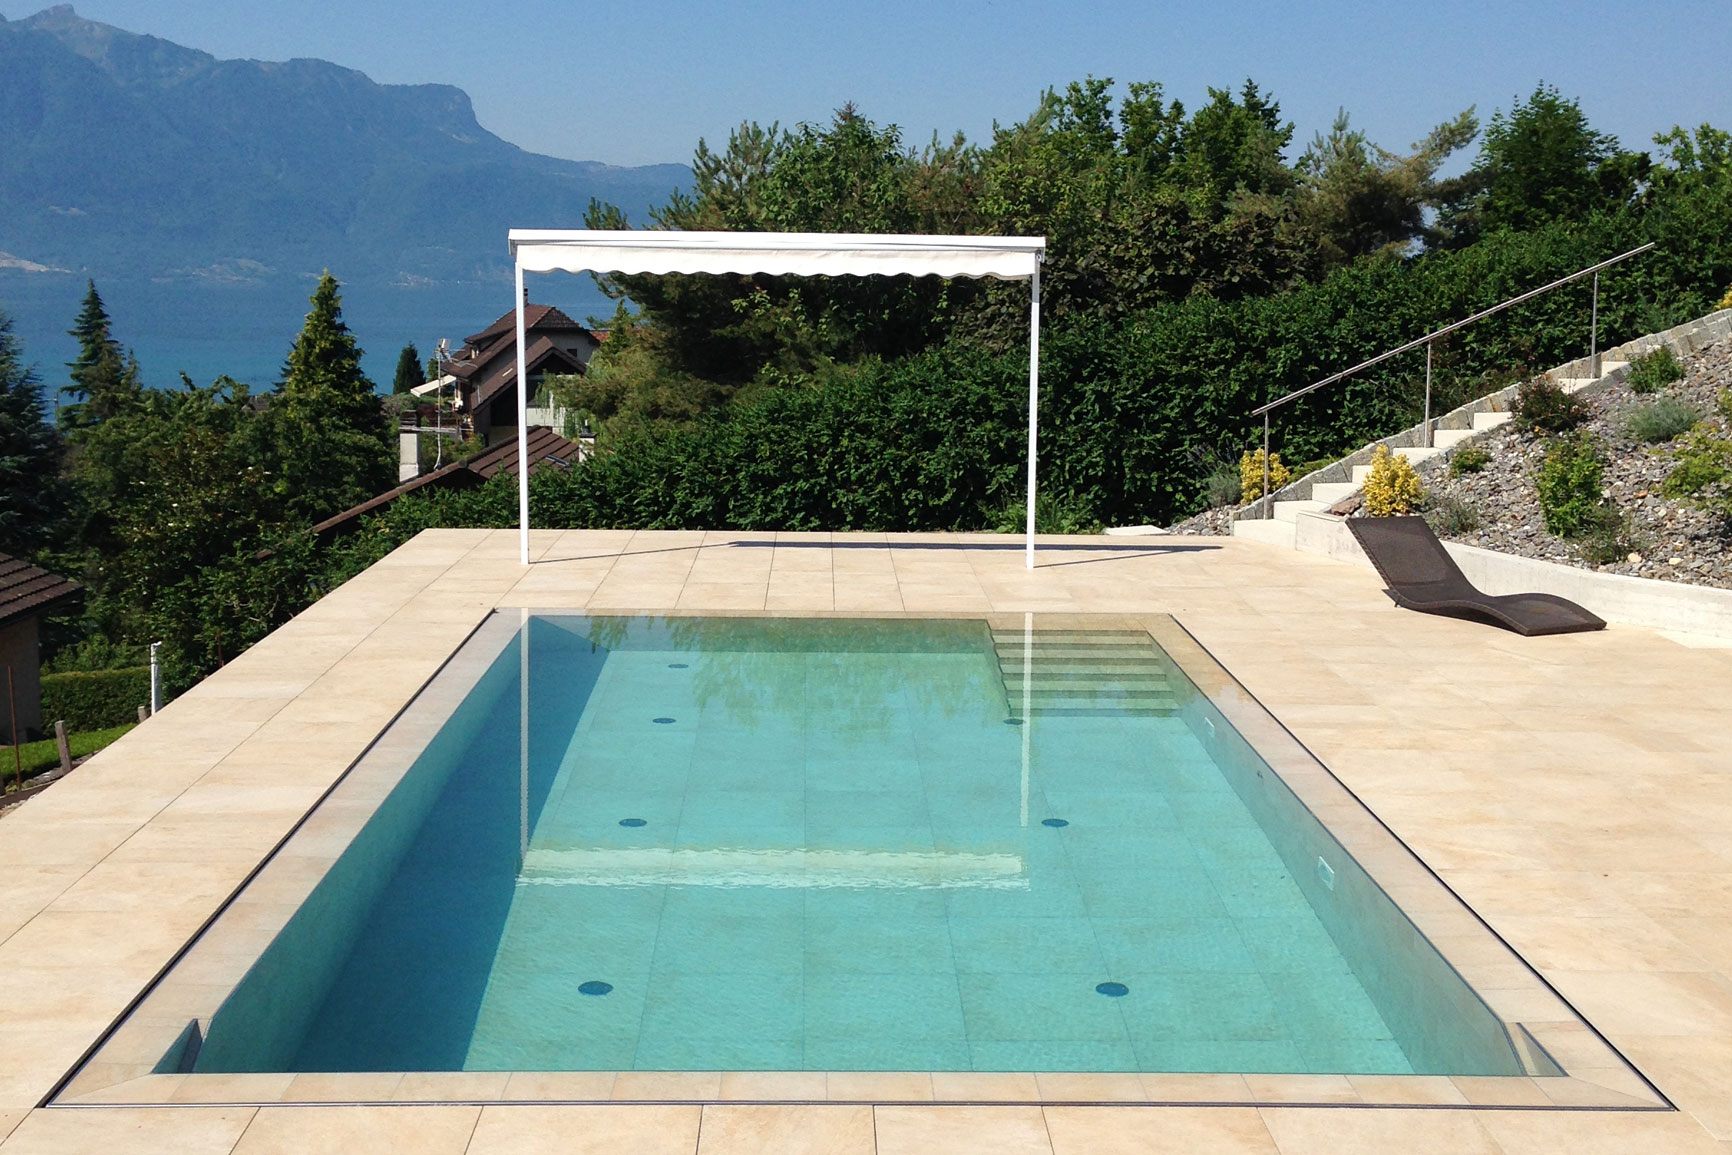 D bordement carrelage piscines widmer for Securite piscine miroir